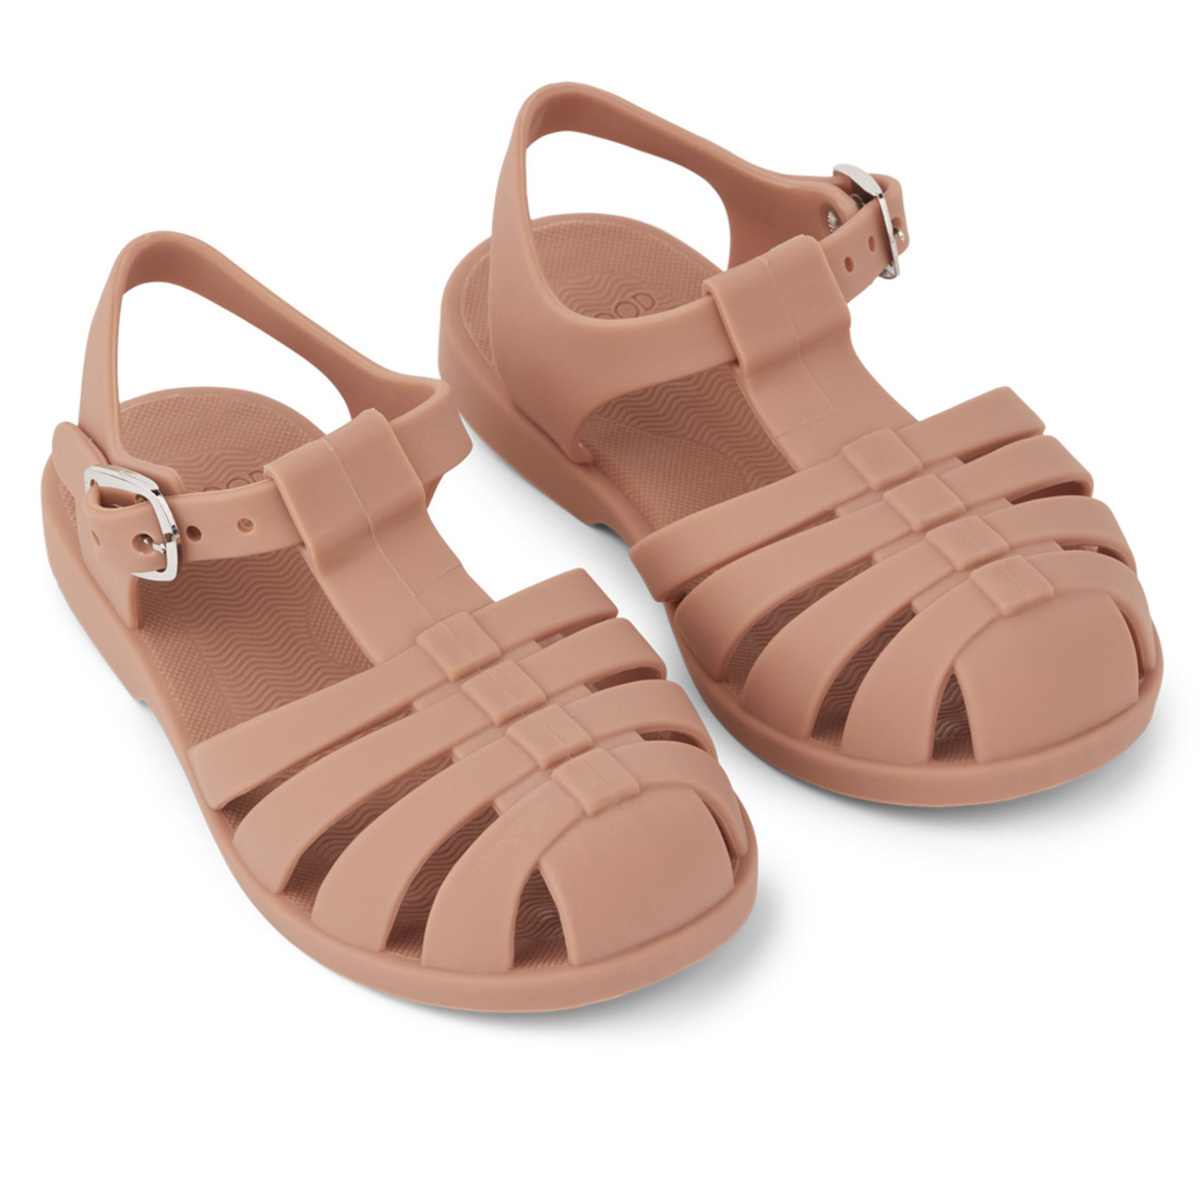 Chaussons & Chaussures Sandales Bre Tuscany Rose - 23 Sandales Bre Tuscany Rose - 23